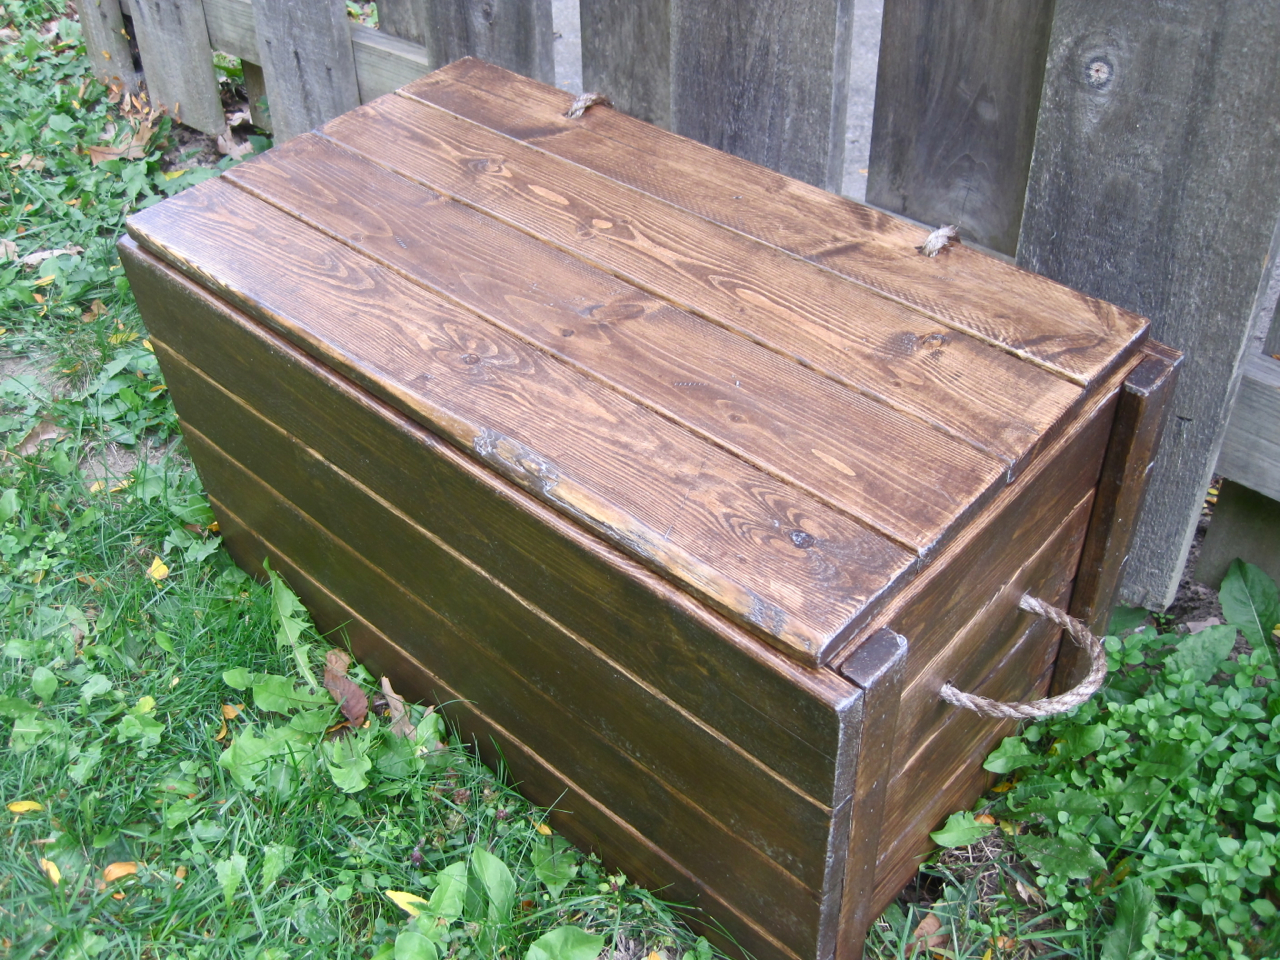 Wood Storage Chest - Make your own! | The Project Lady